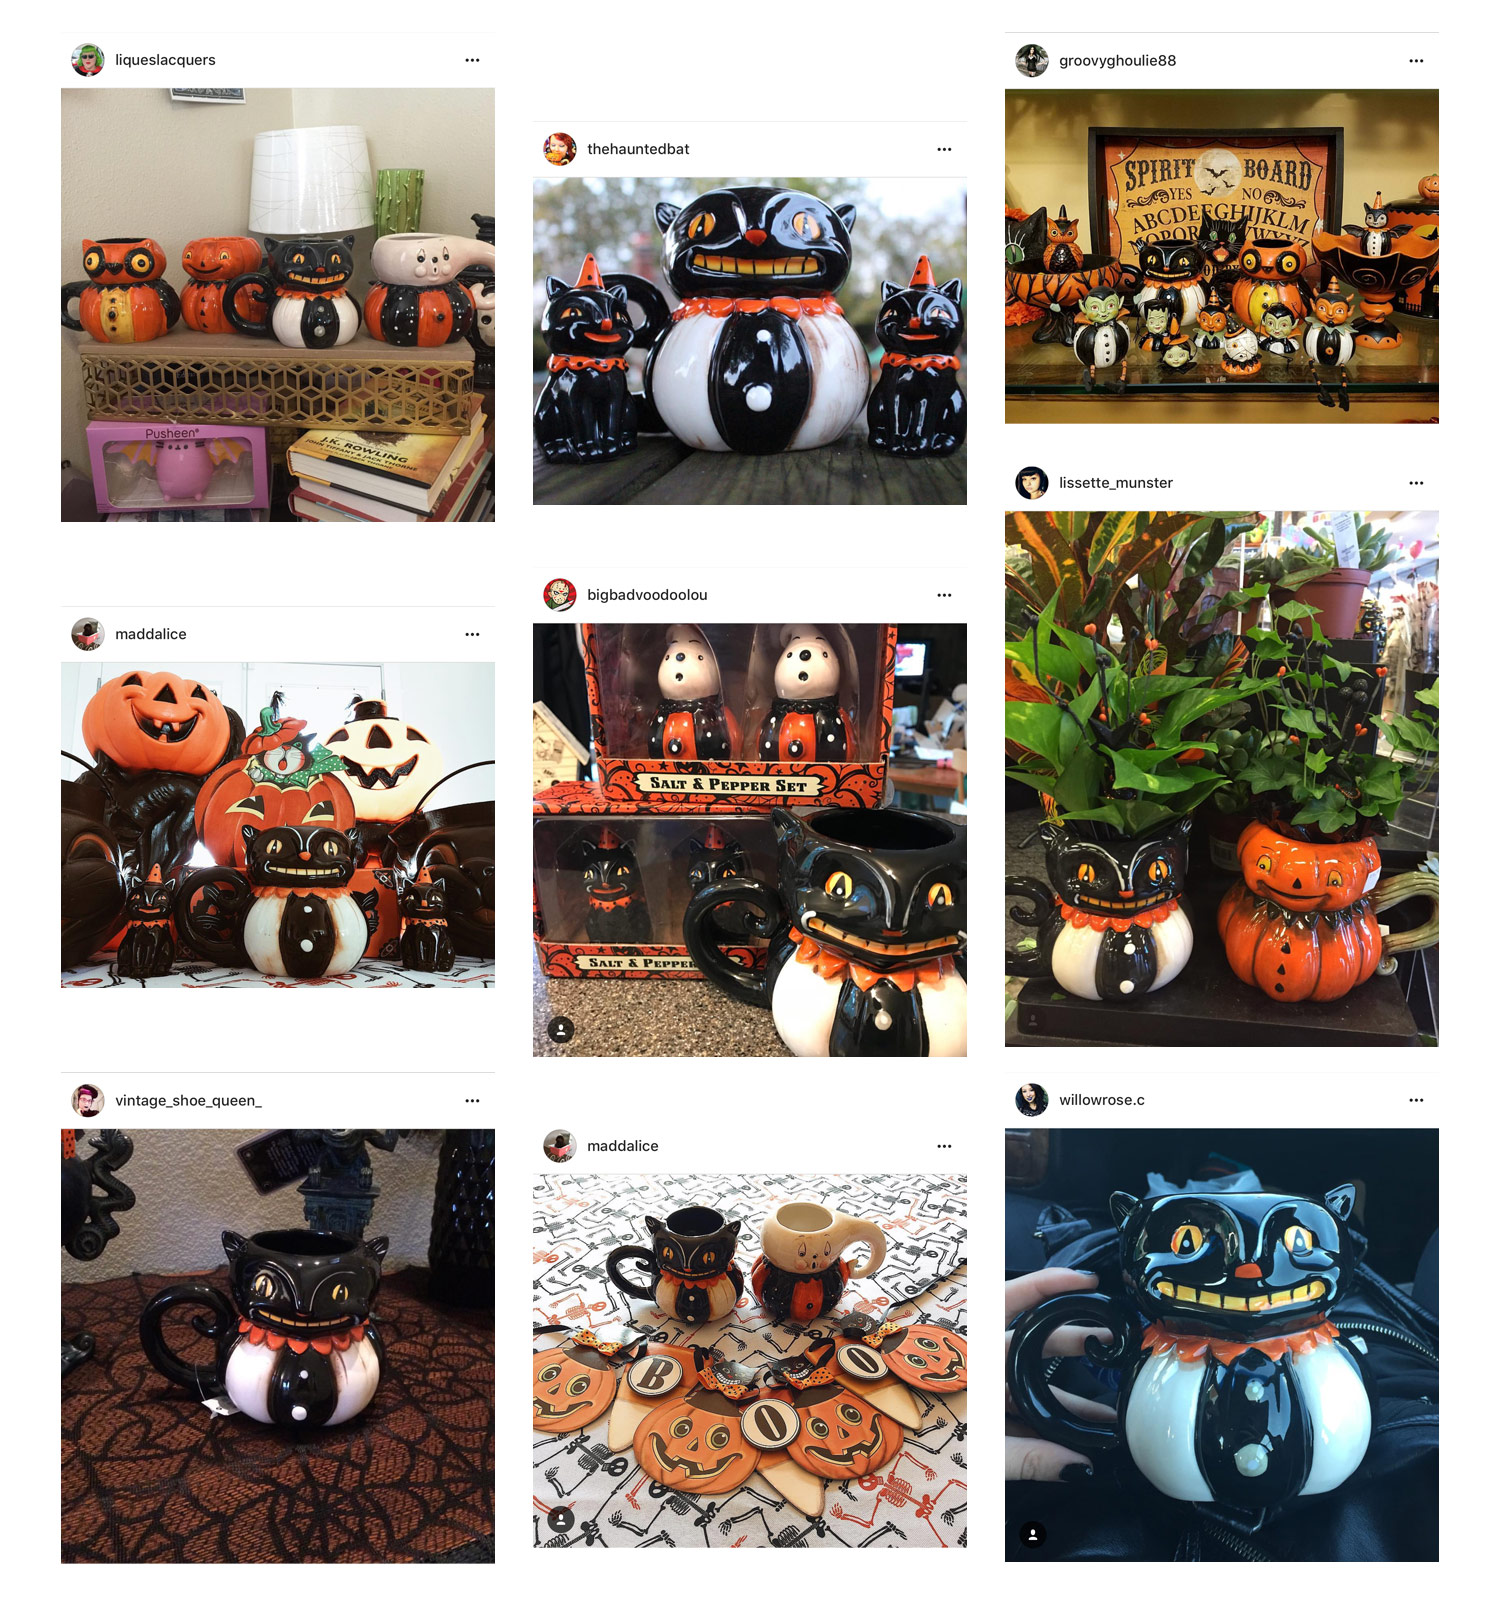 Sharing some photos where I was tagged on Instagram by fans who were thrilled about their new Johanna Parker Design black cat mugs...Your enthusiasm is contagious!